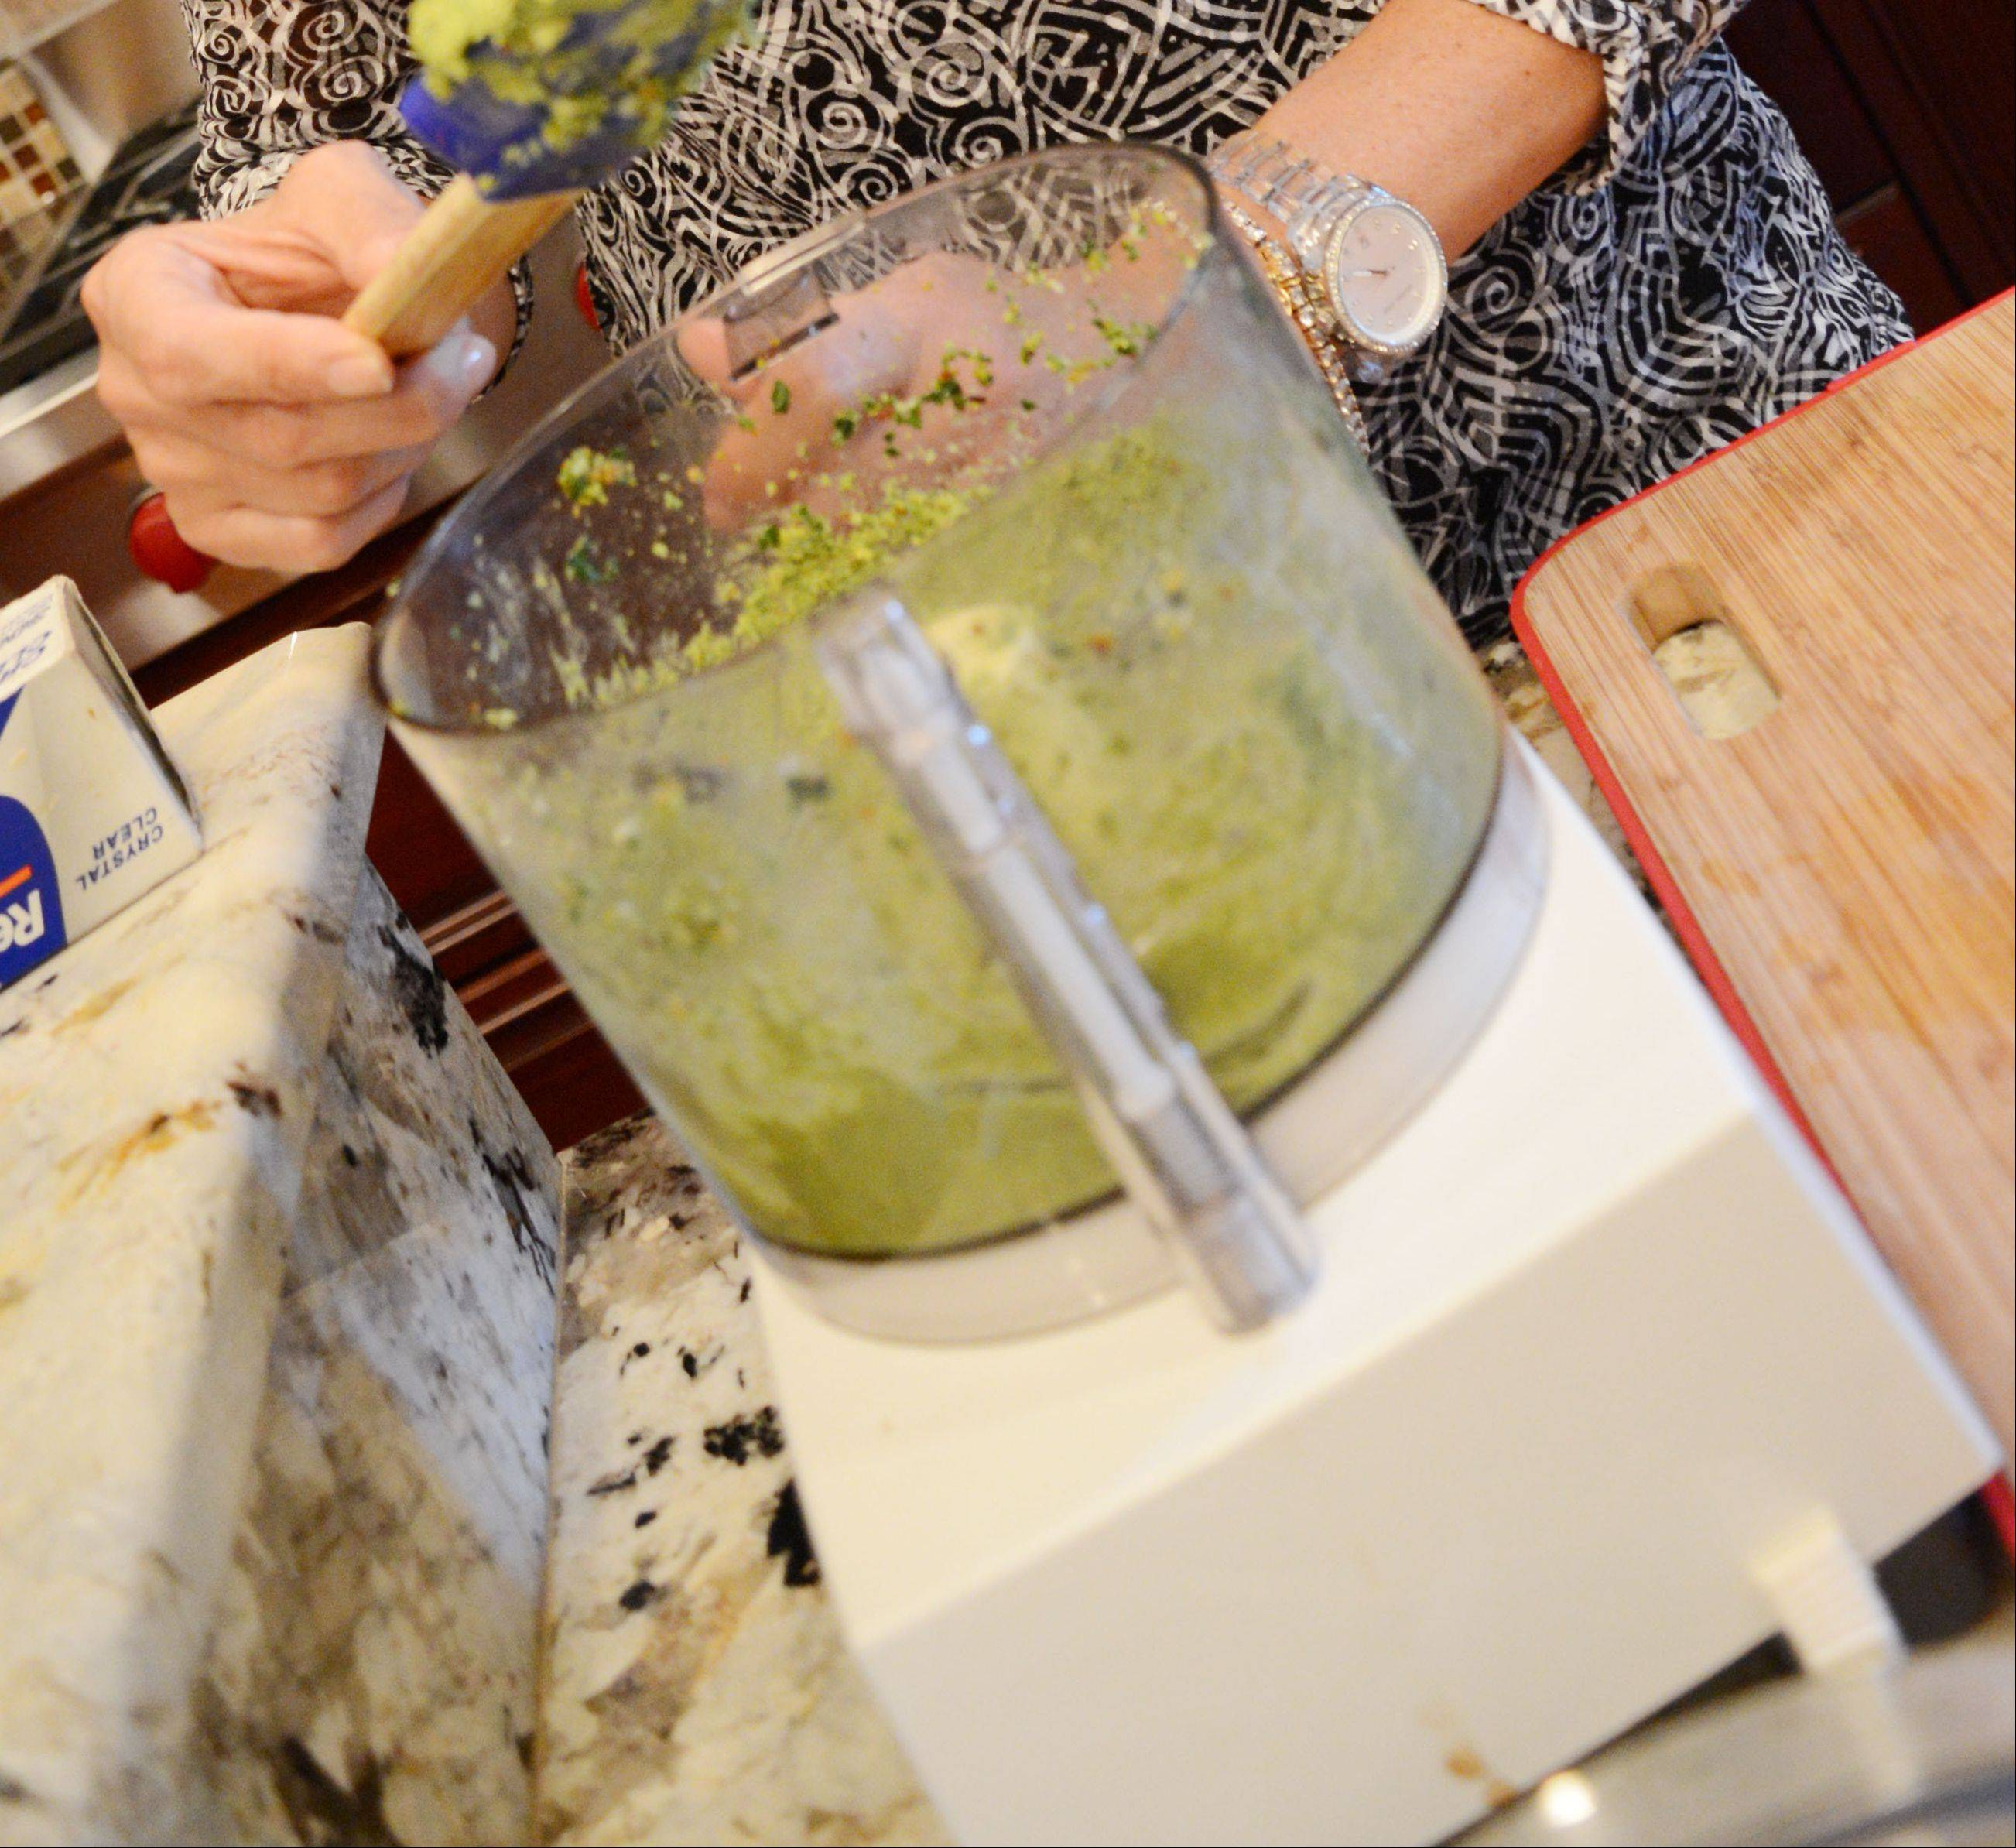 Nancy Bertschy prepares pistachio basil spinach butter to top baked salmon. She makes a large batch of the butter and keeps it in the freezer.